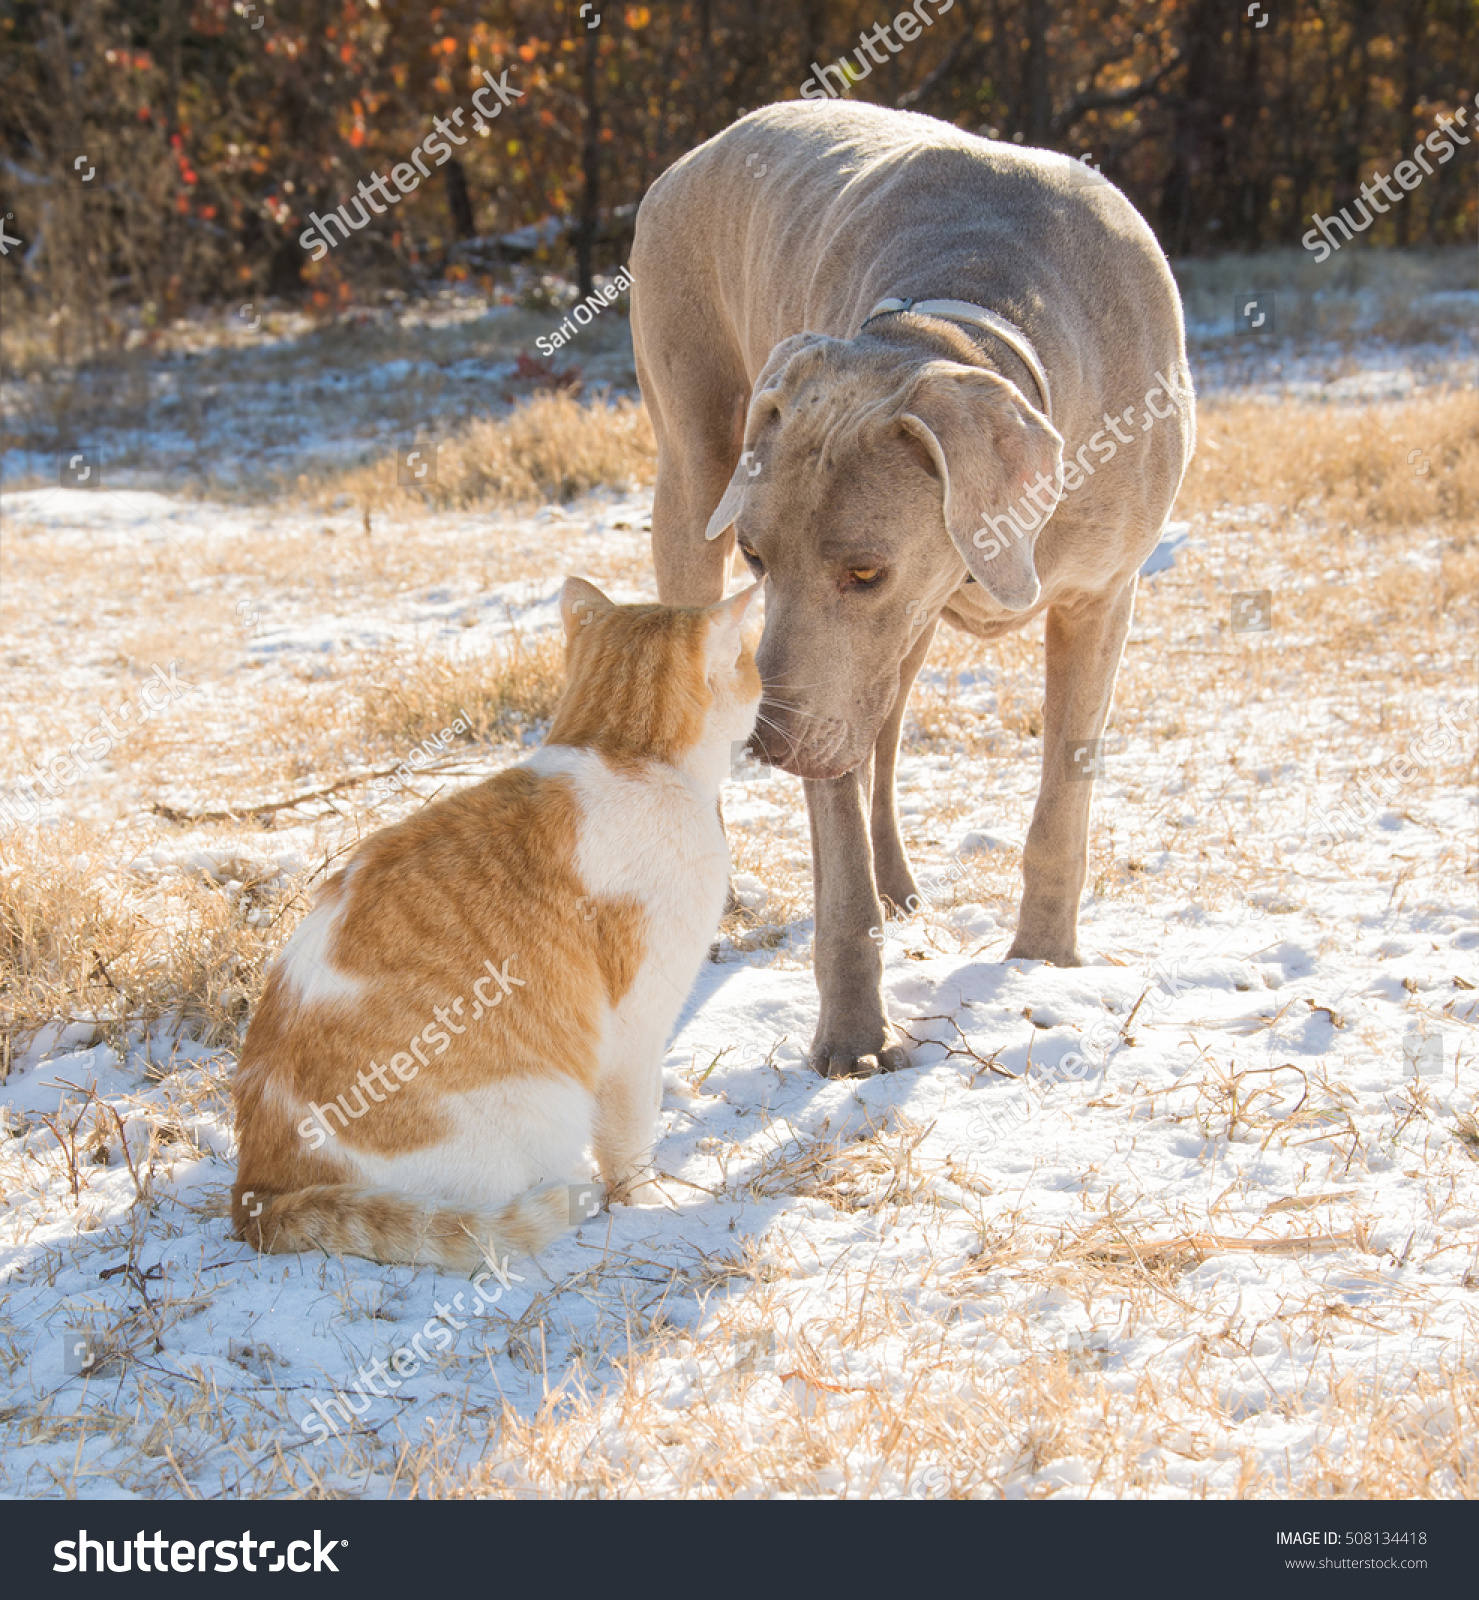 stock-photo-dog-and-cat-nose-to-nose-in-